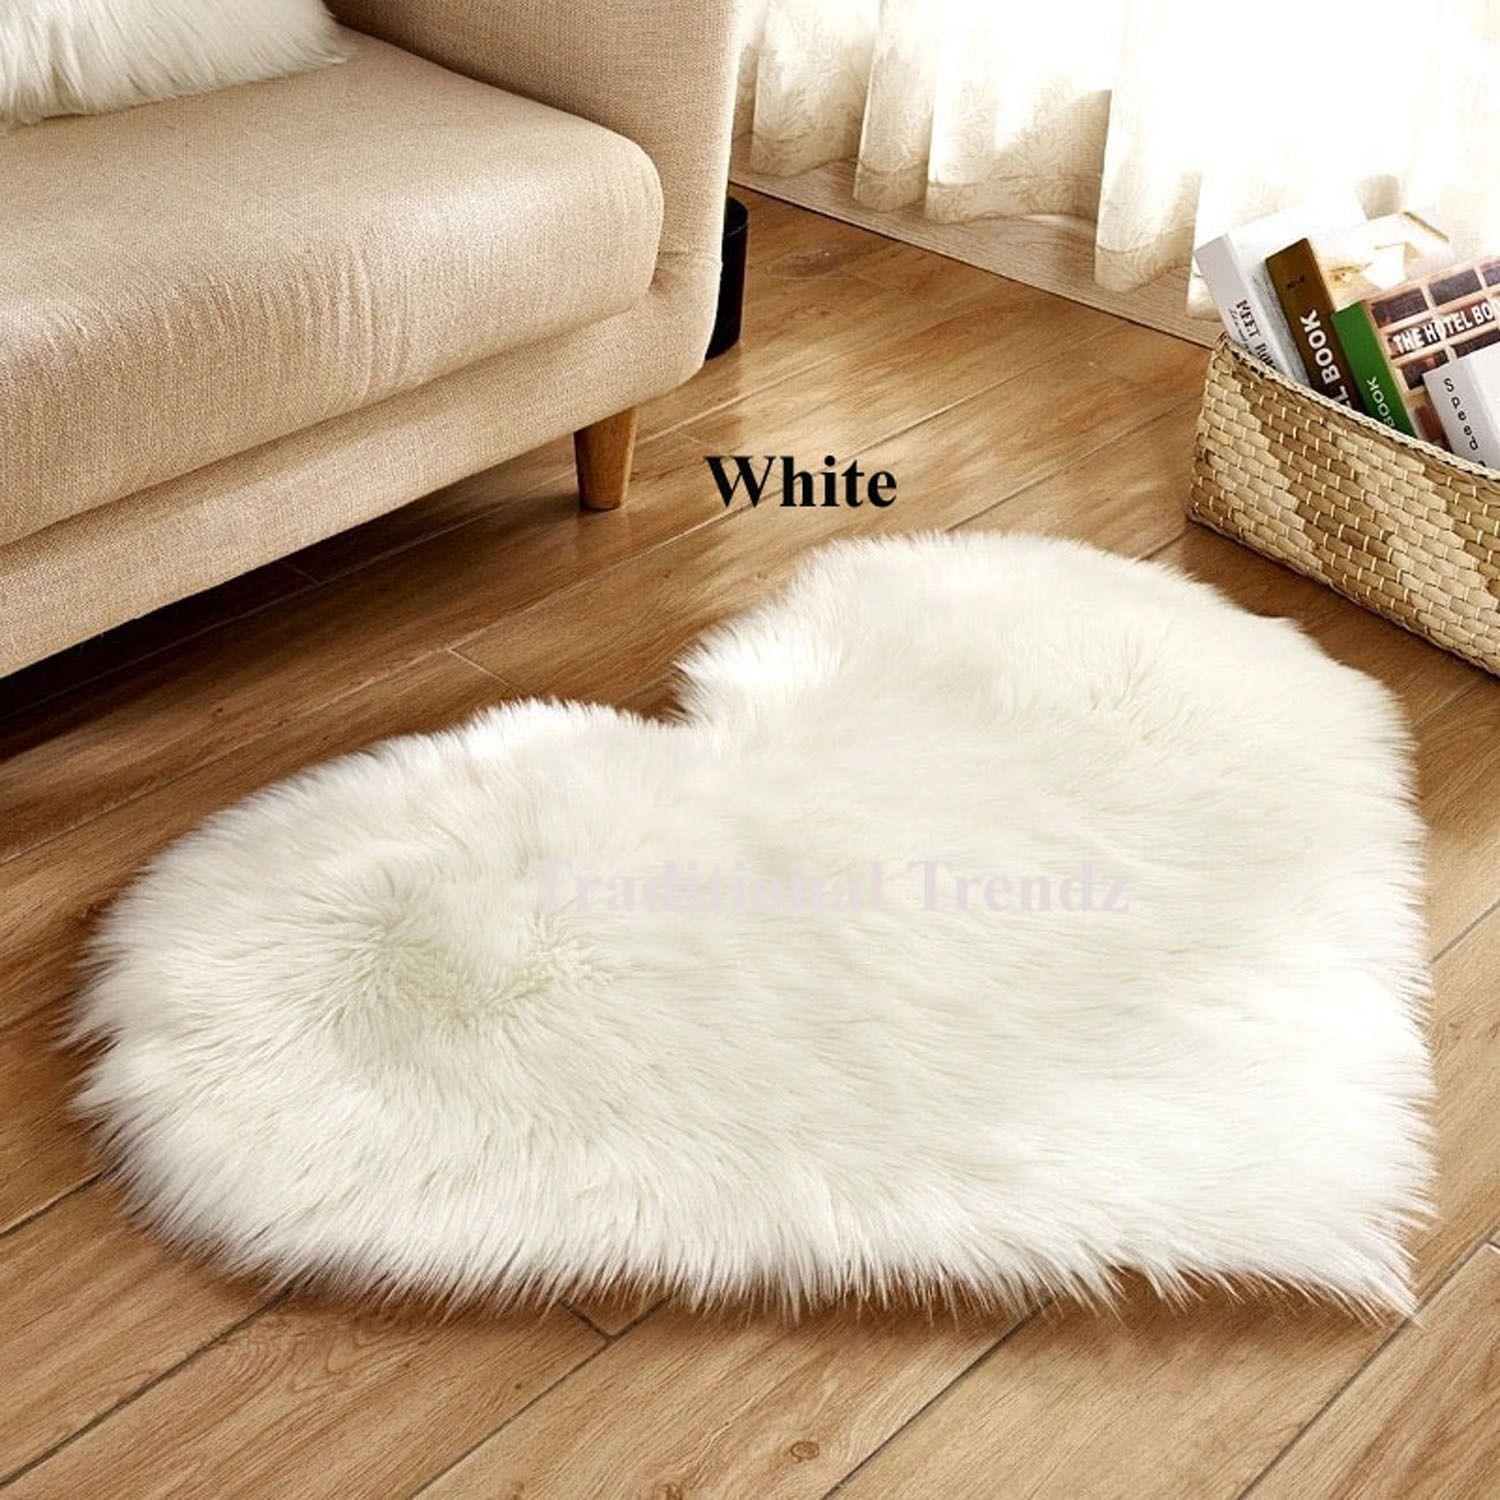 Heart Shaped Faux Sheepskin Hairy Fluffy Soft Area Rug For Bed Chair Throw Artificial Sheepskin Rug Fluffy Rug Plain Rugs Bedroom Carpet